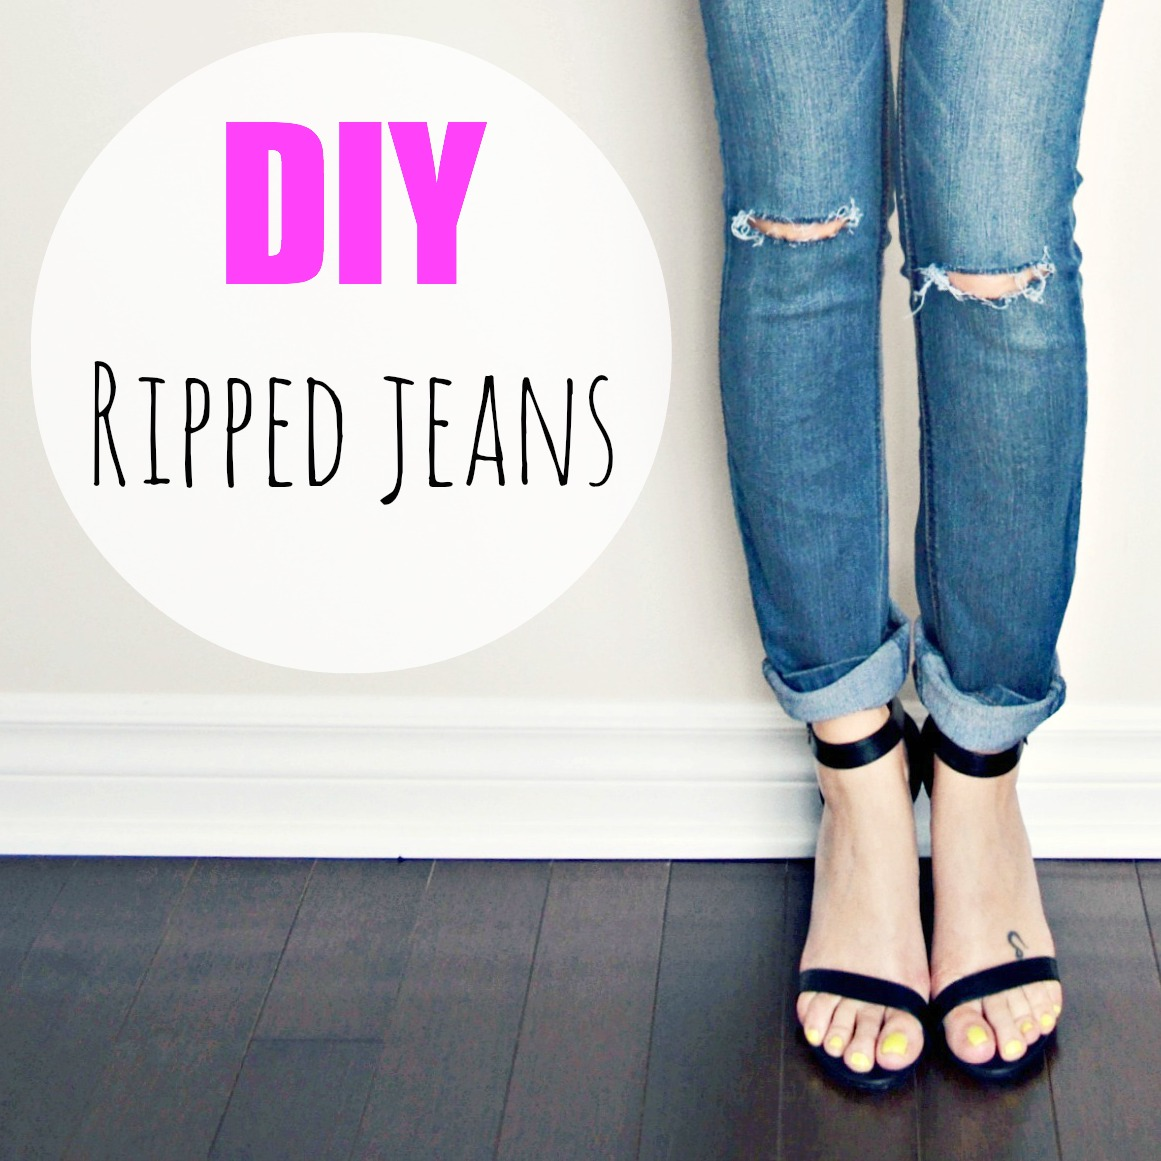 DIY Ripped Jeans | Home and Heart DIY